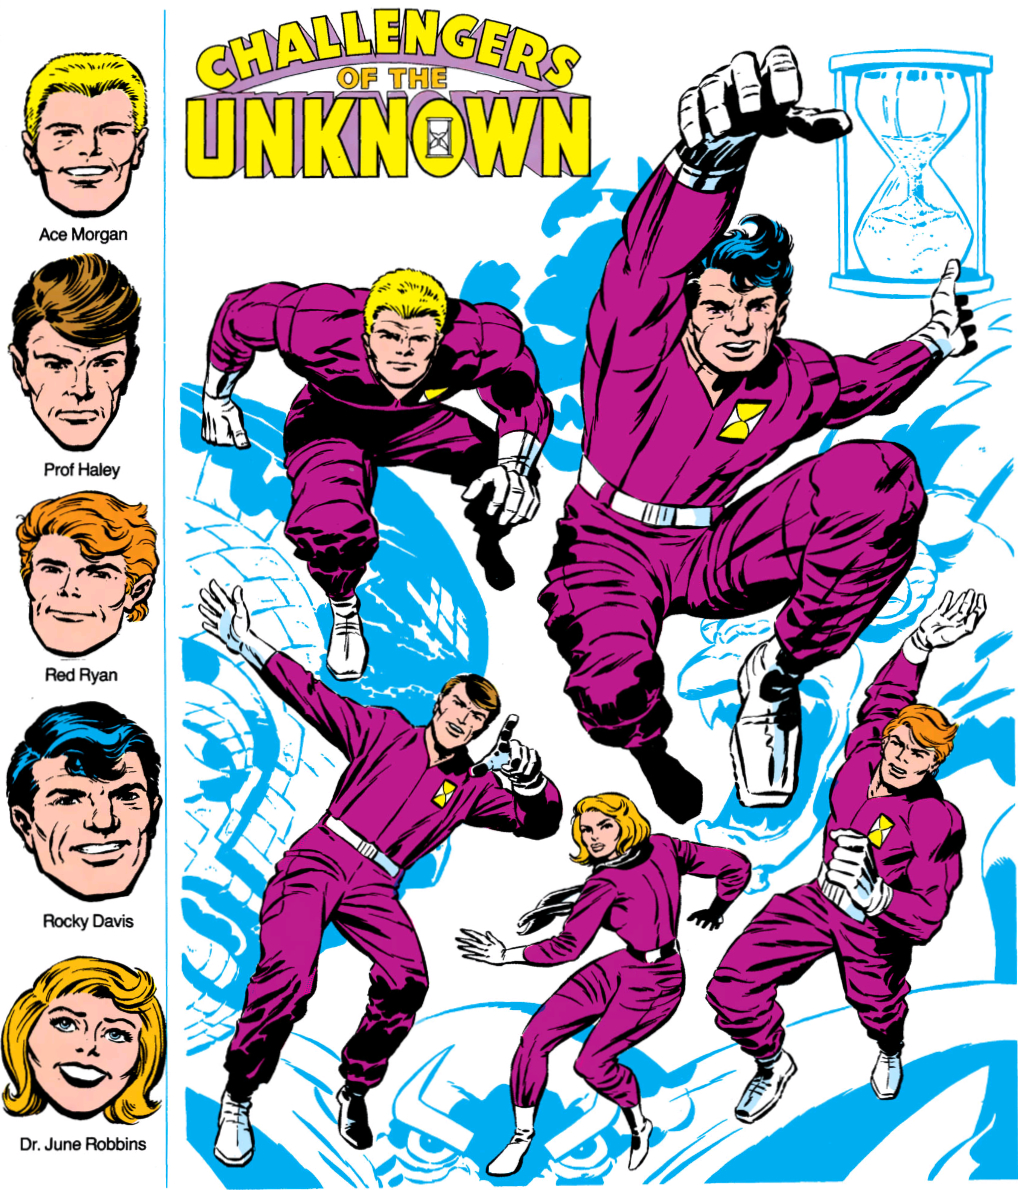 File:Challengers of the Unknown 001.jpg